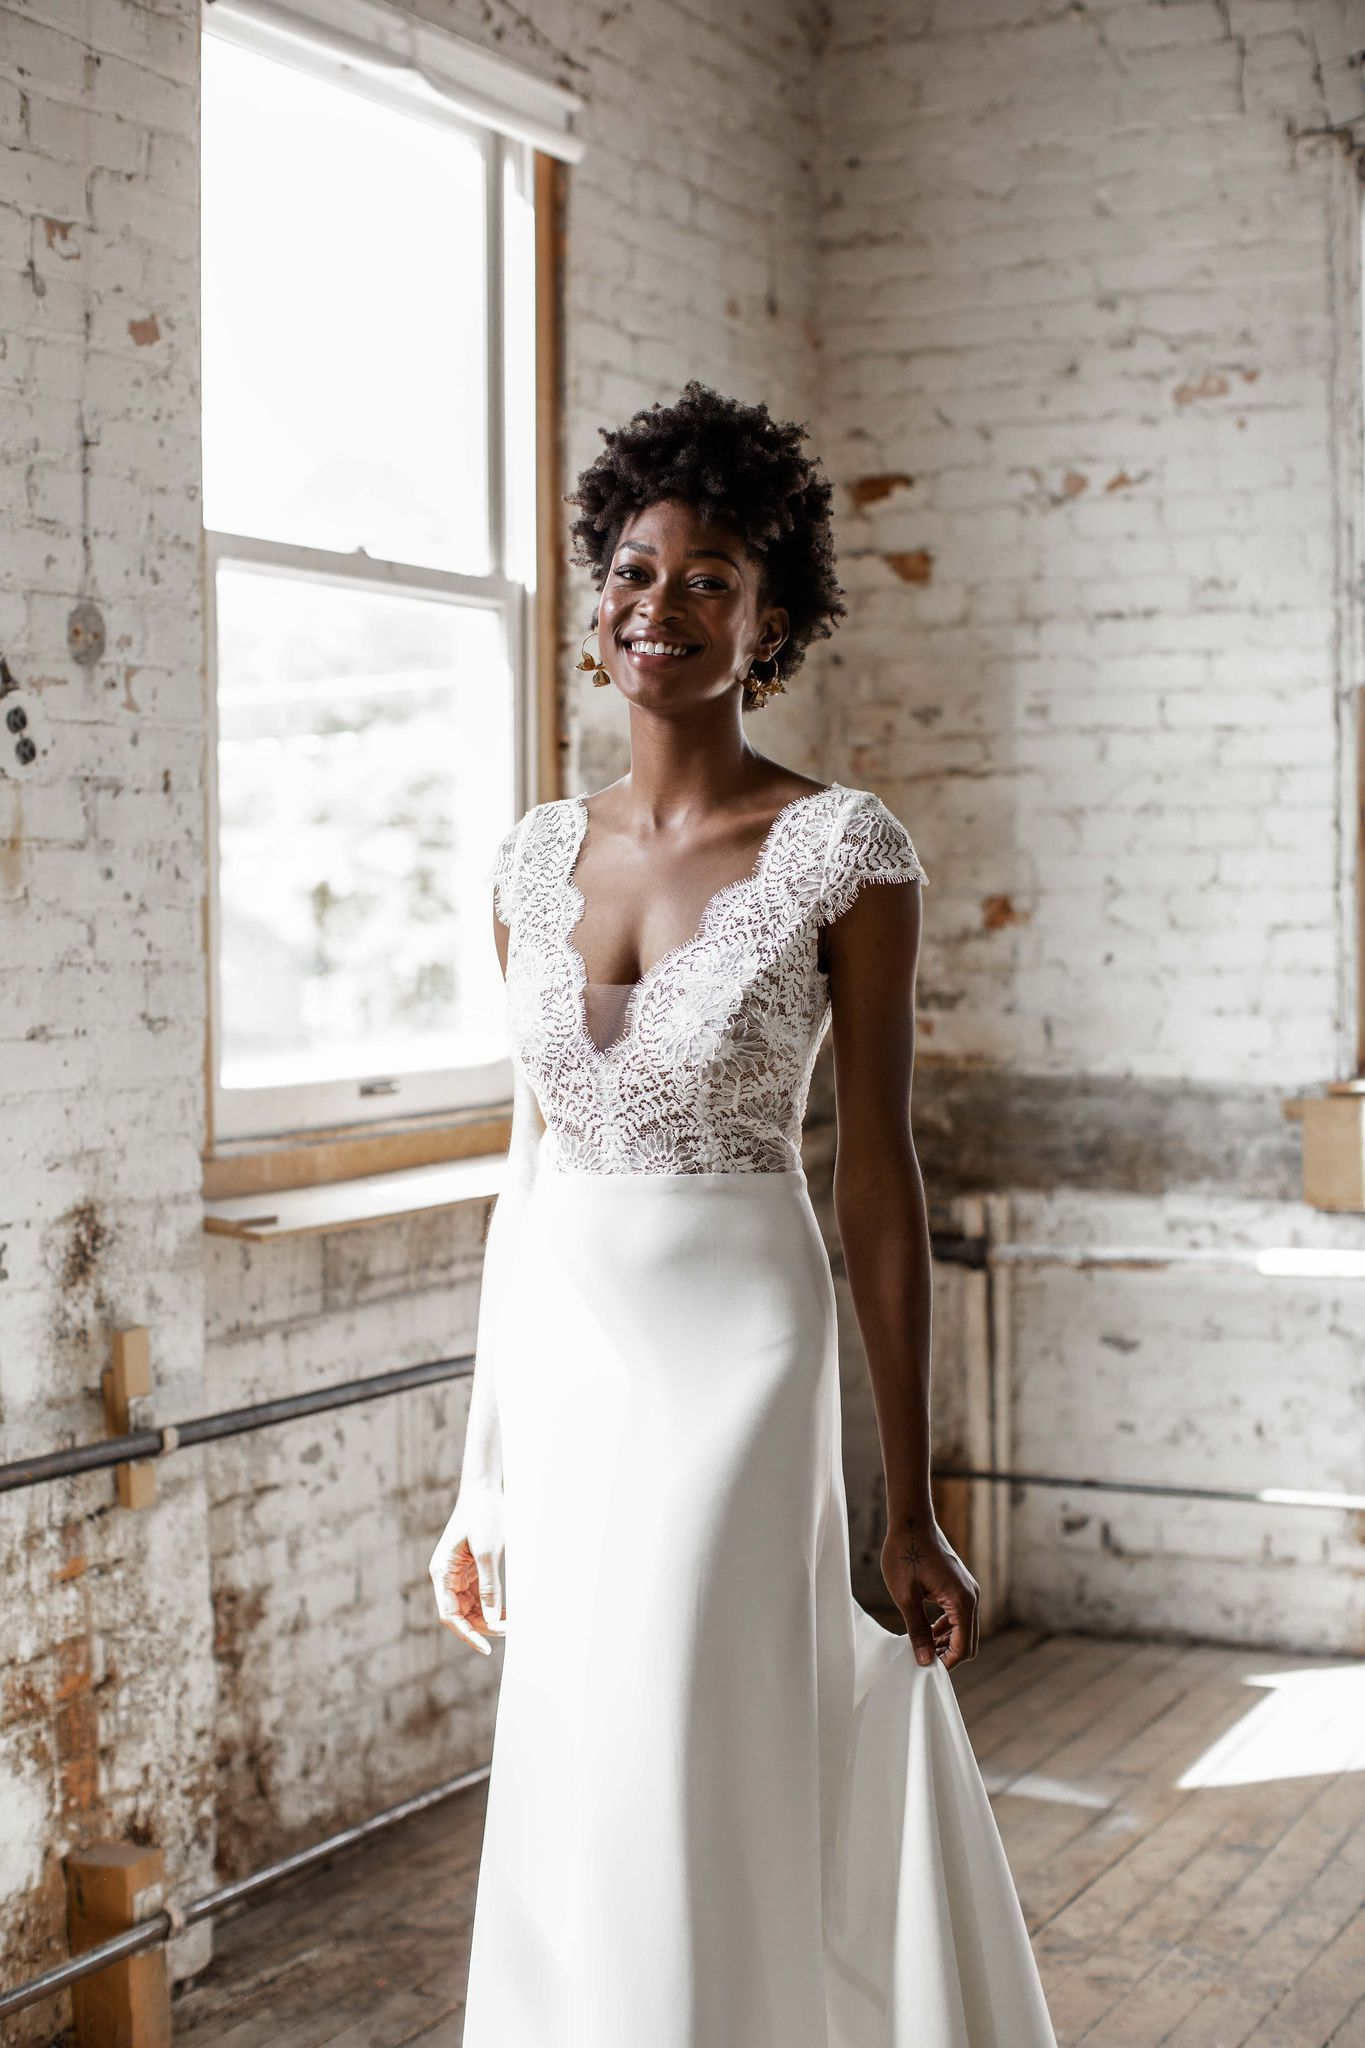 Rae By Anais Anette Price 2350 In 2021 Wedding Dress Brands Seattle Wedding Dress Boho Wedding Dress Lace [ 2048 x 1365 Pixel ]